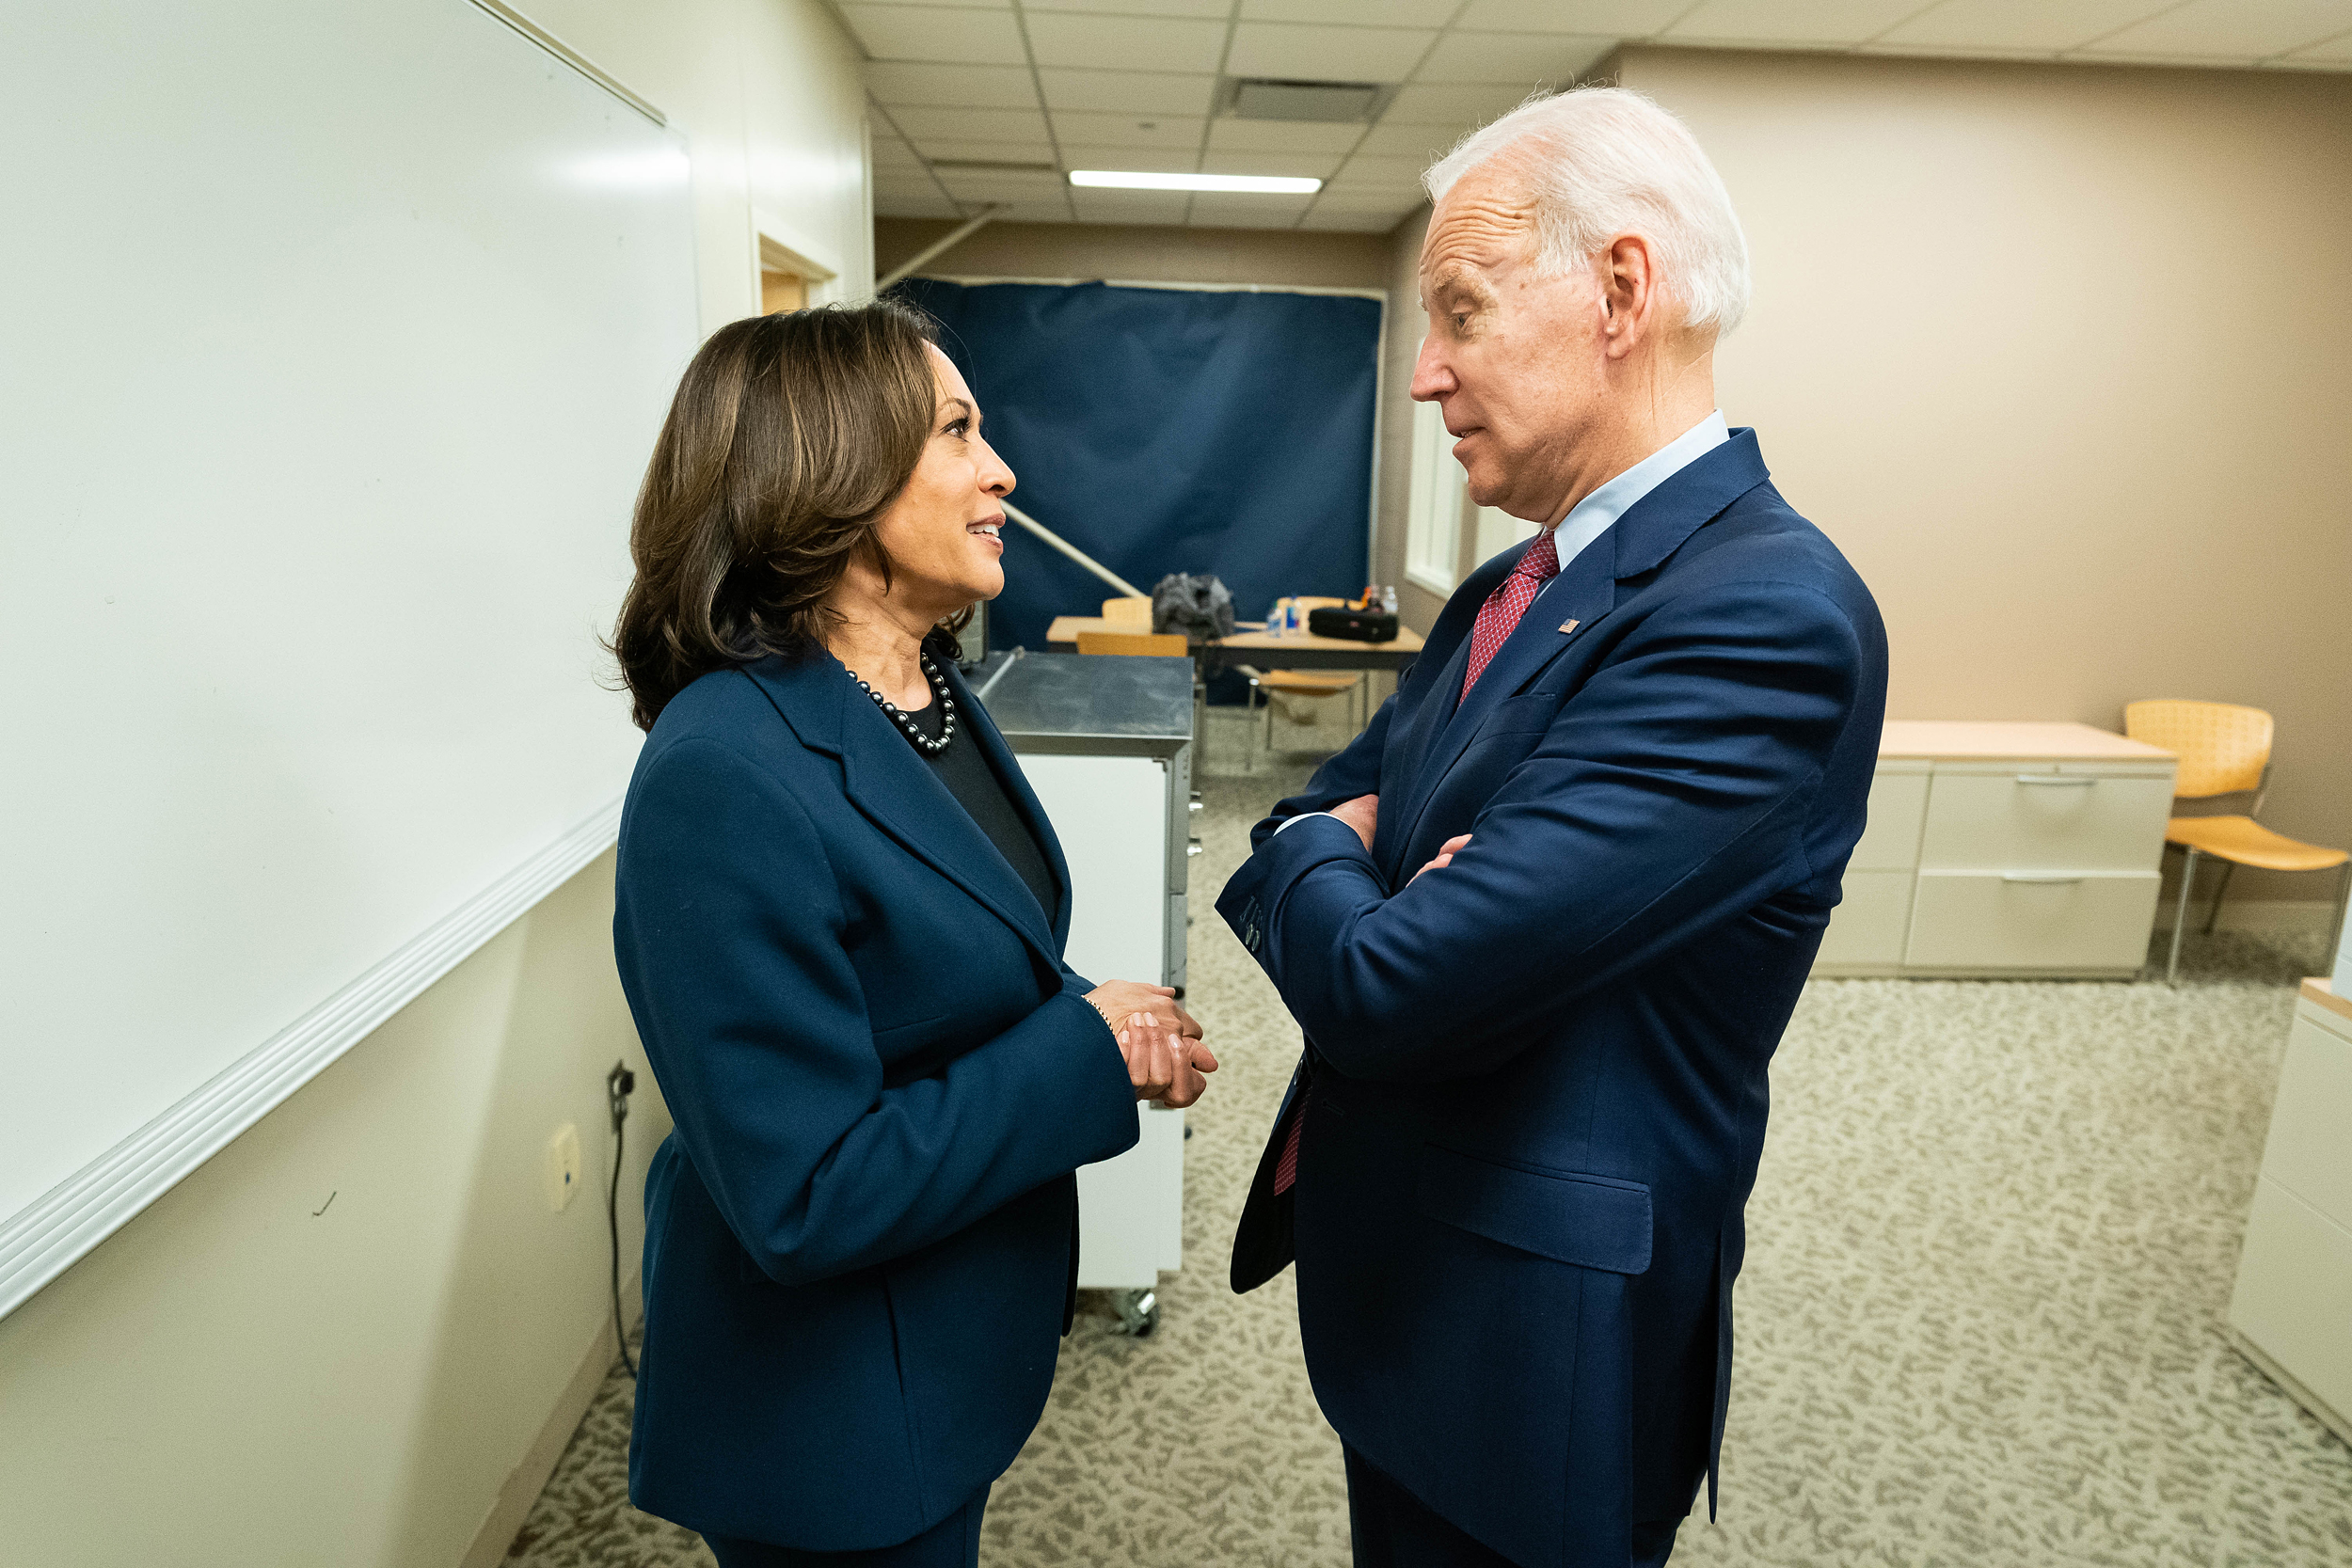 The Veep S Vp Inside Joe Biden S Search For His Own Running Mate